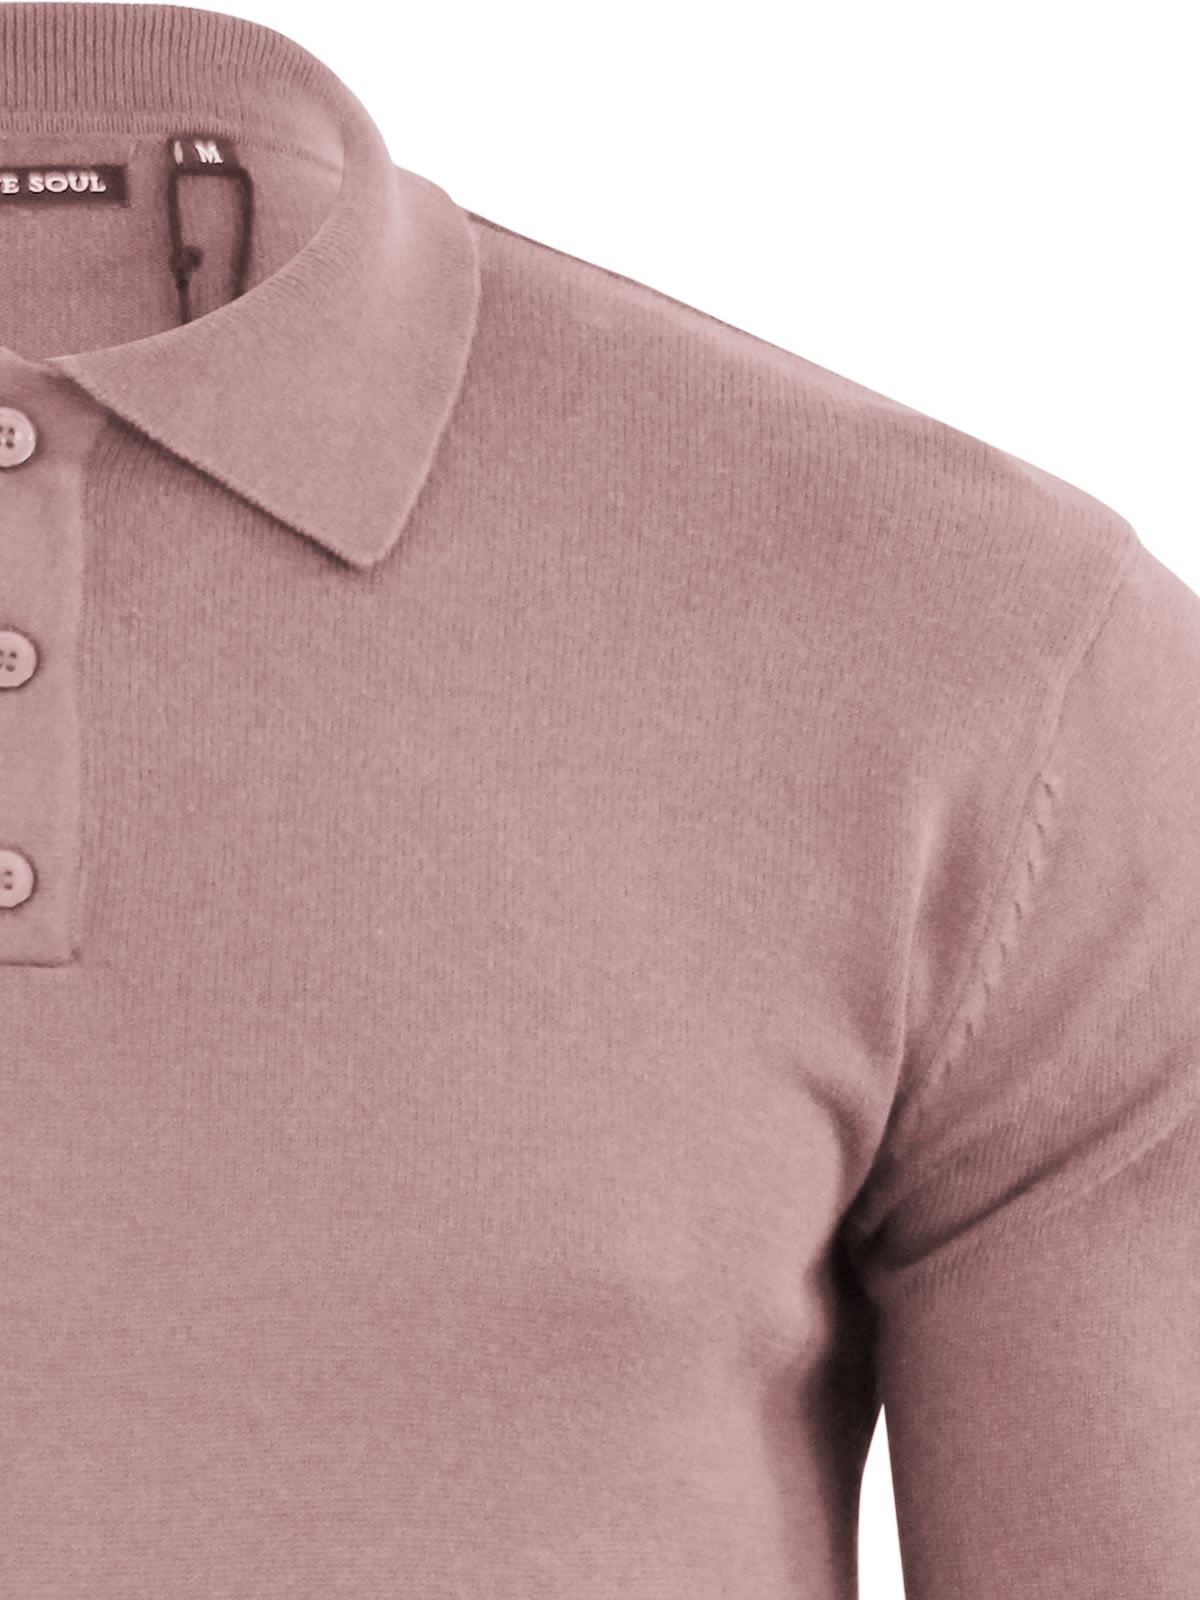 Mens Knitted Polo T Shirt Brave Soul Placket Collared Jumper